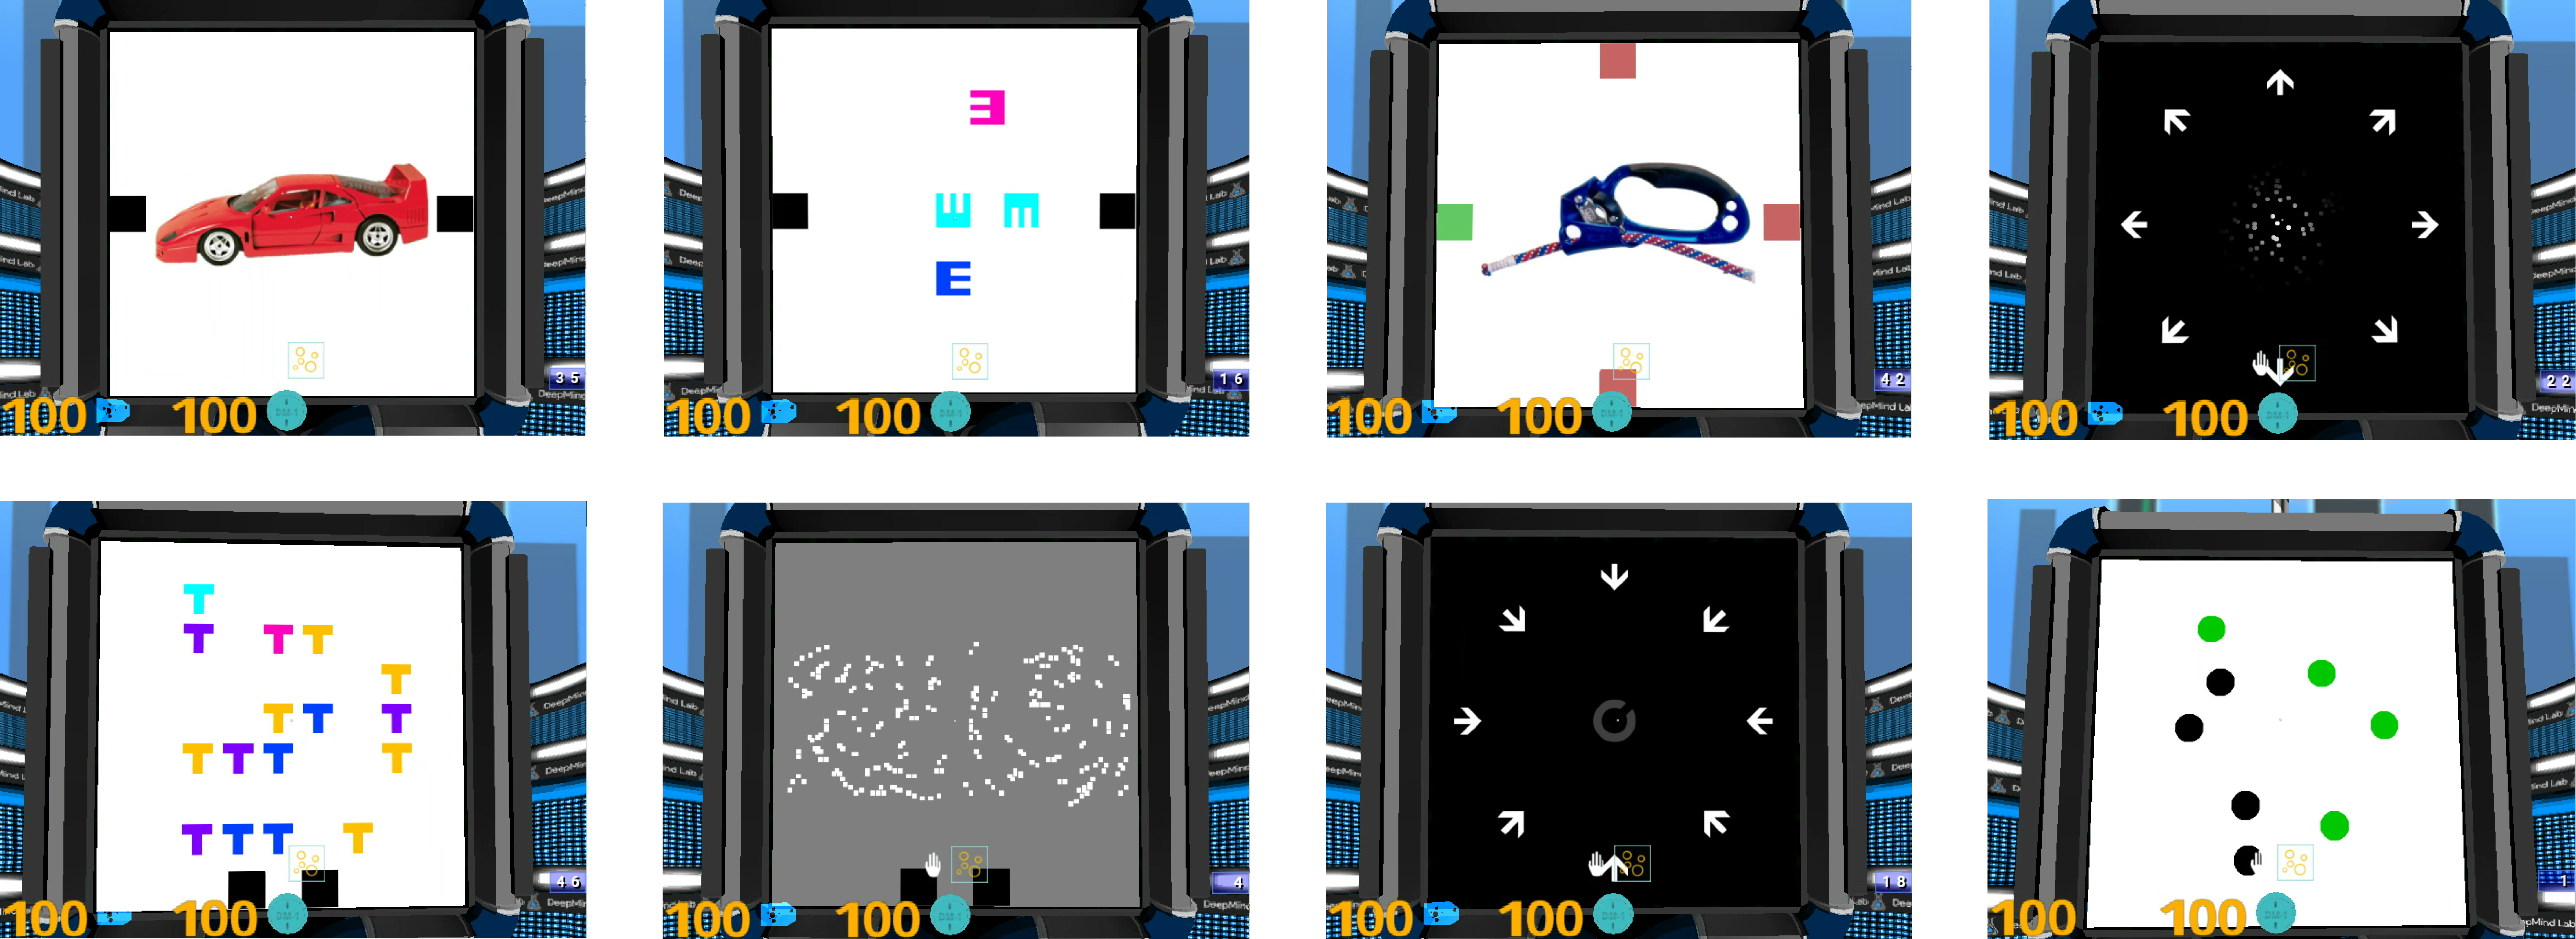 Screenshots from the various tasks we are releasing with the Psychlab framework. Proceeding clockwise starting from the upper left, they are (1) continuous recognition, (2) change detection (3) arbitrary visuomotor mapping, (4) random dot motion discrimination, (5) visual search, (6) glass pattern detection, (7) Landolt C identification, and (8) multiple object tracking.